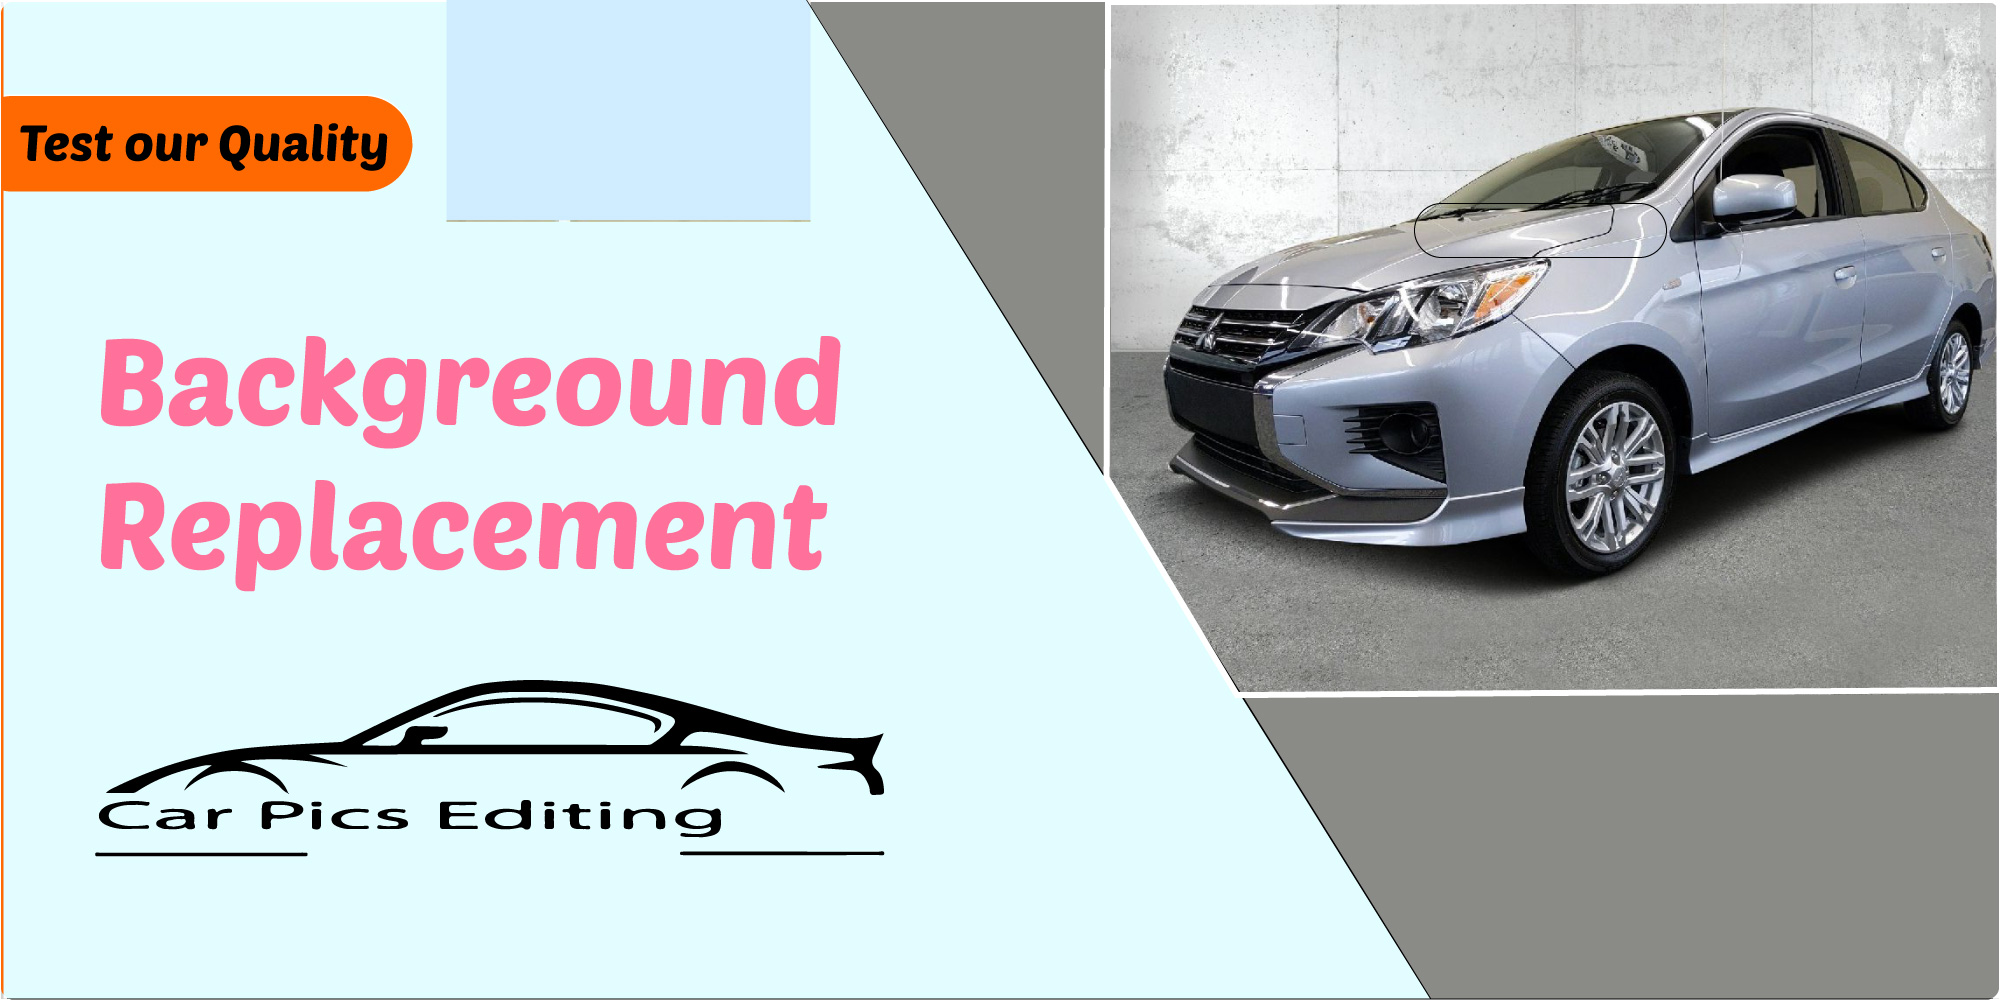 Most Well Guarded Secrets about Automotive Background Replacement 3